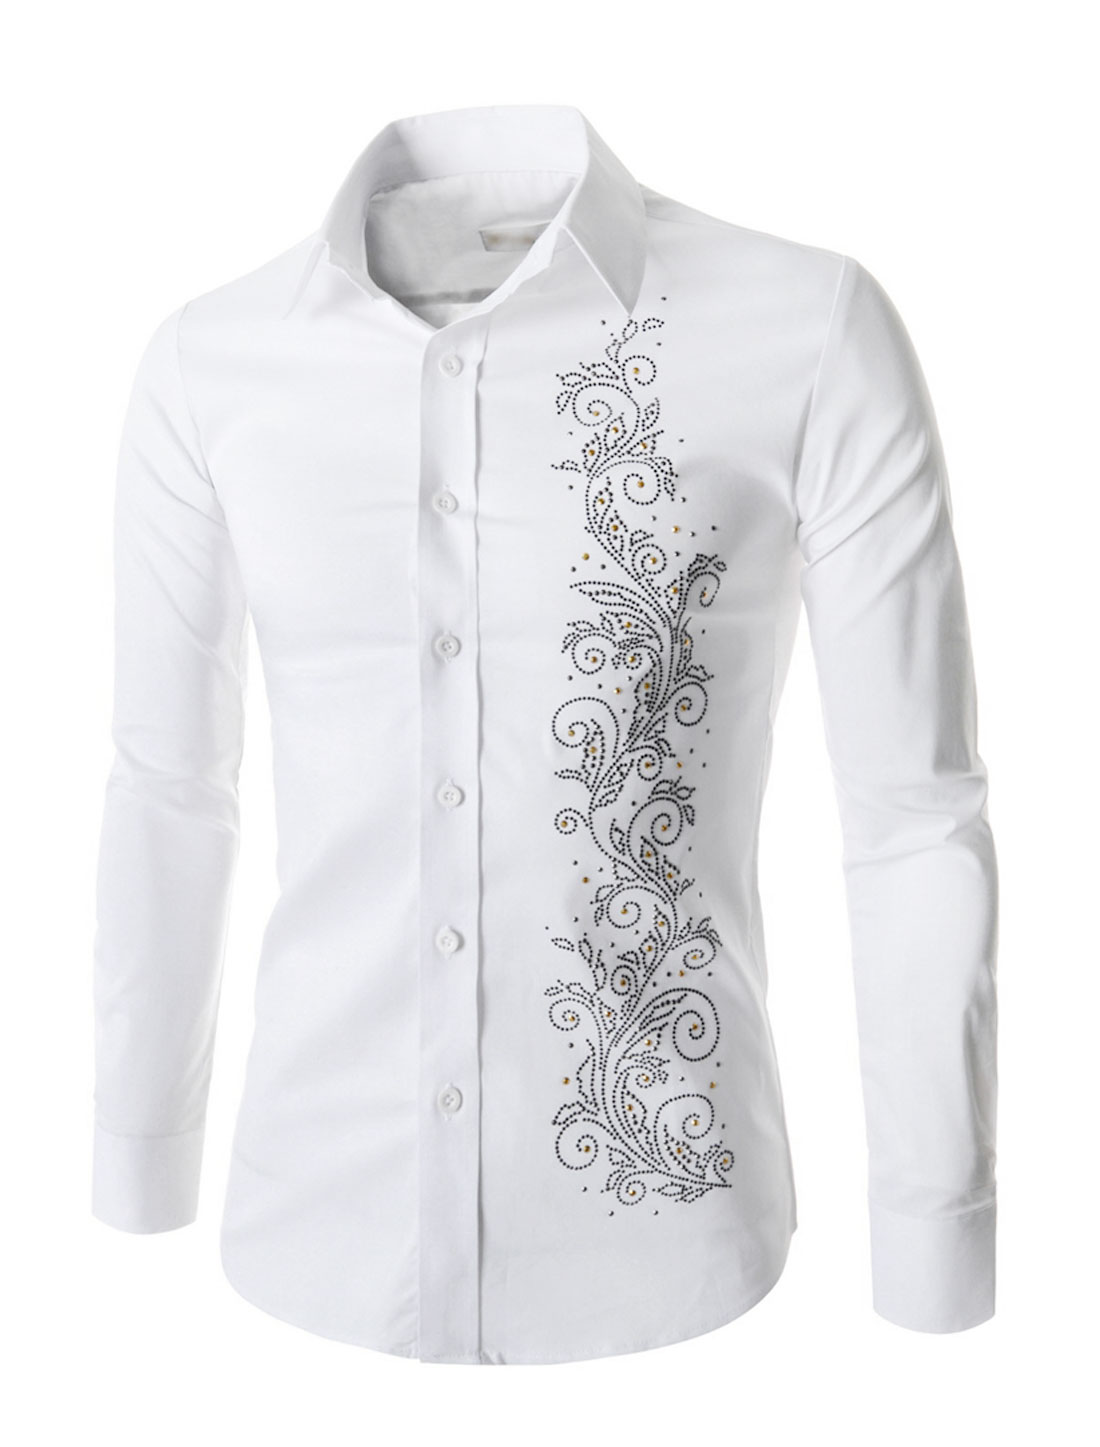 Man Point Collar Long Sleeves Flower Beaded Casual Shirts White M